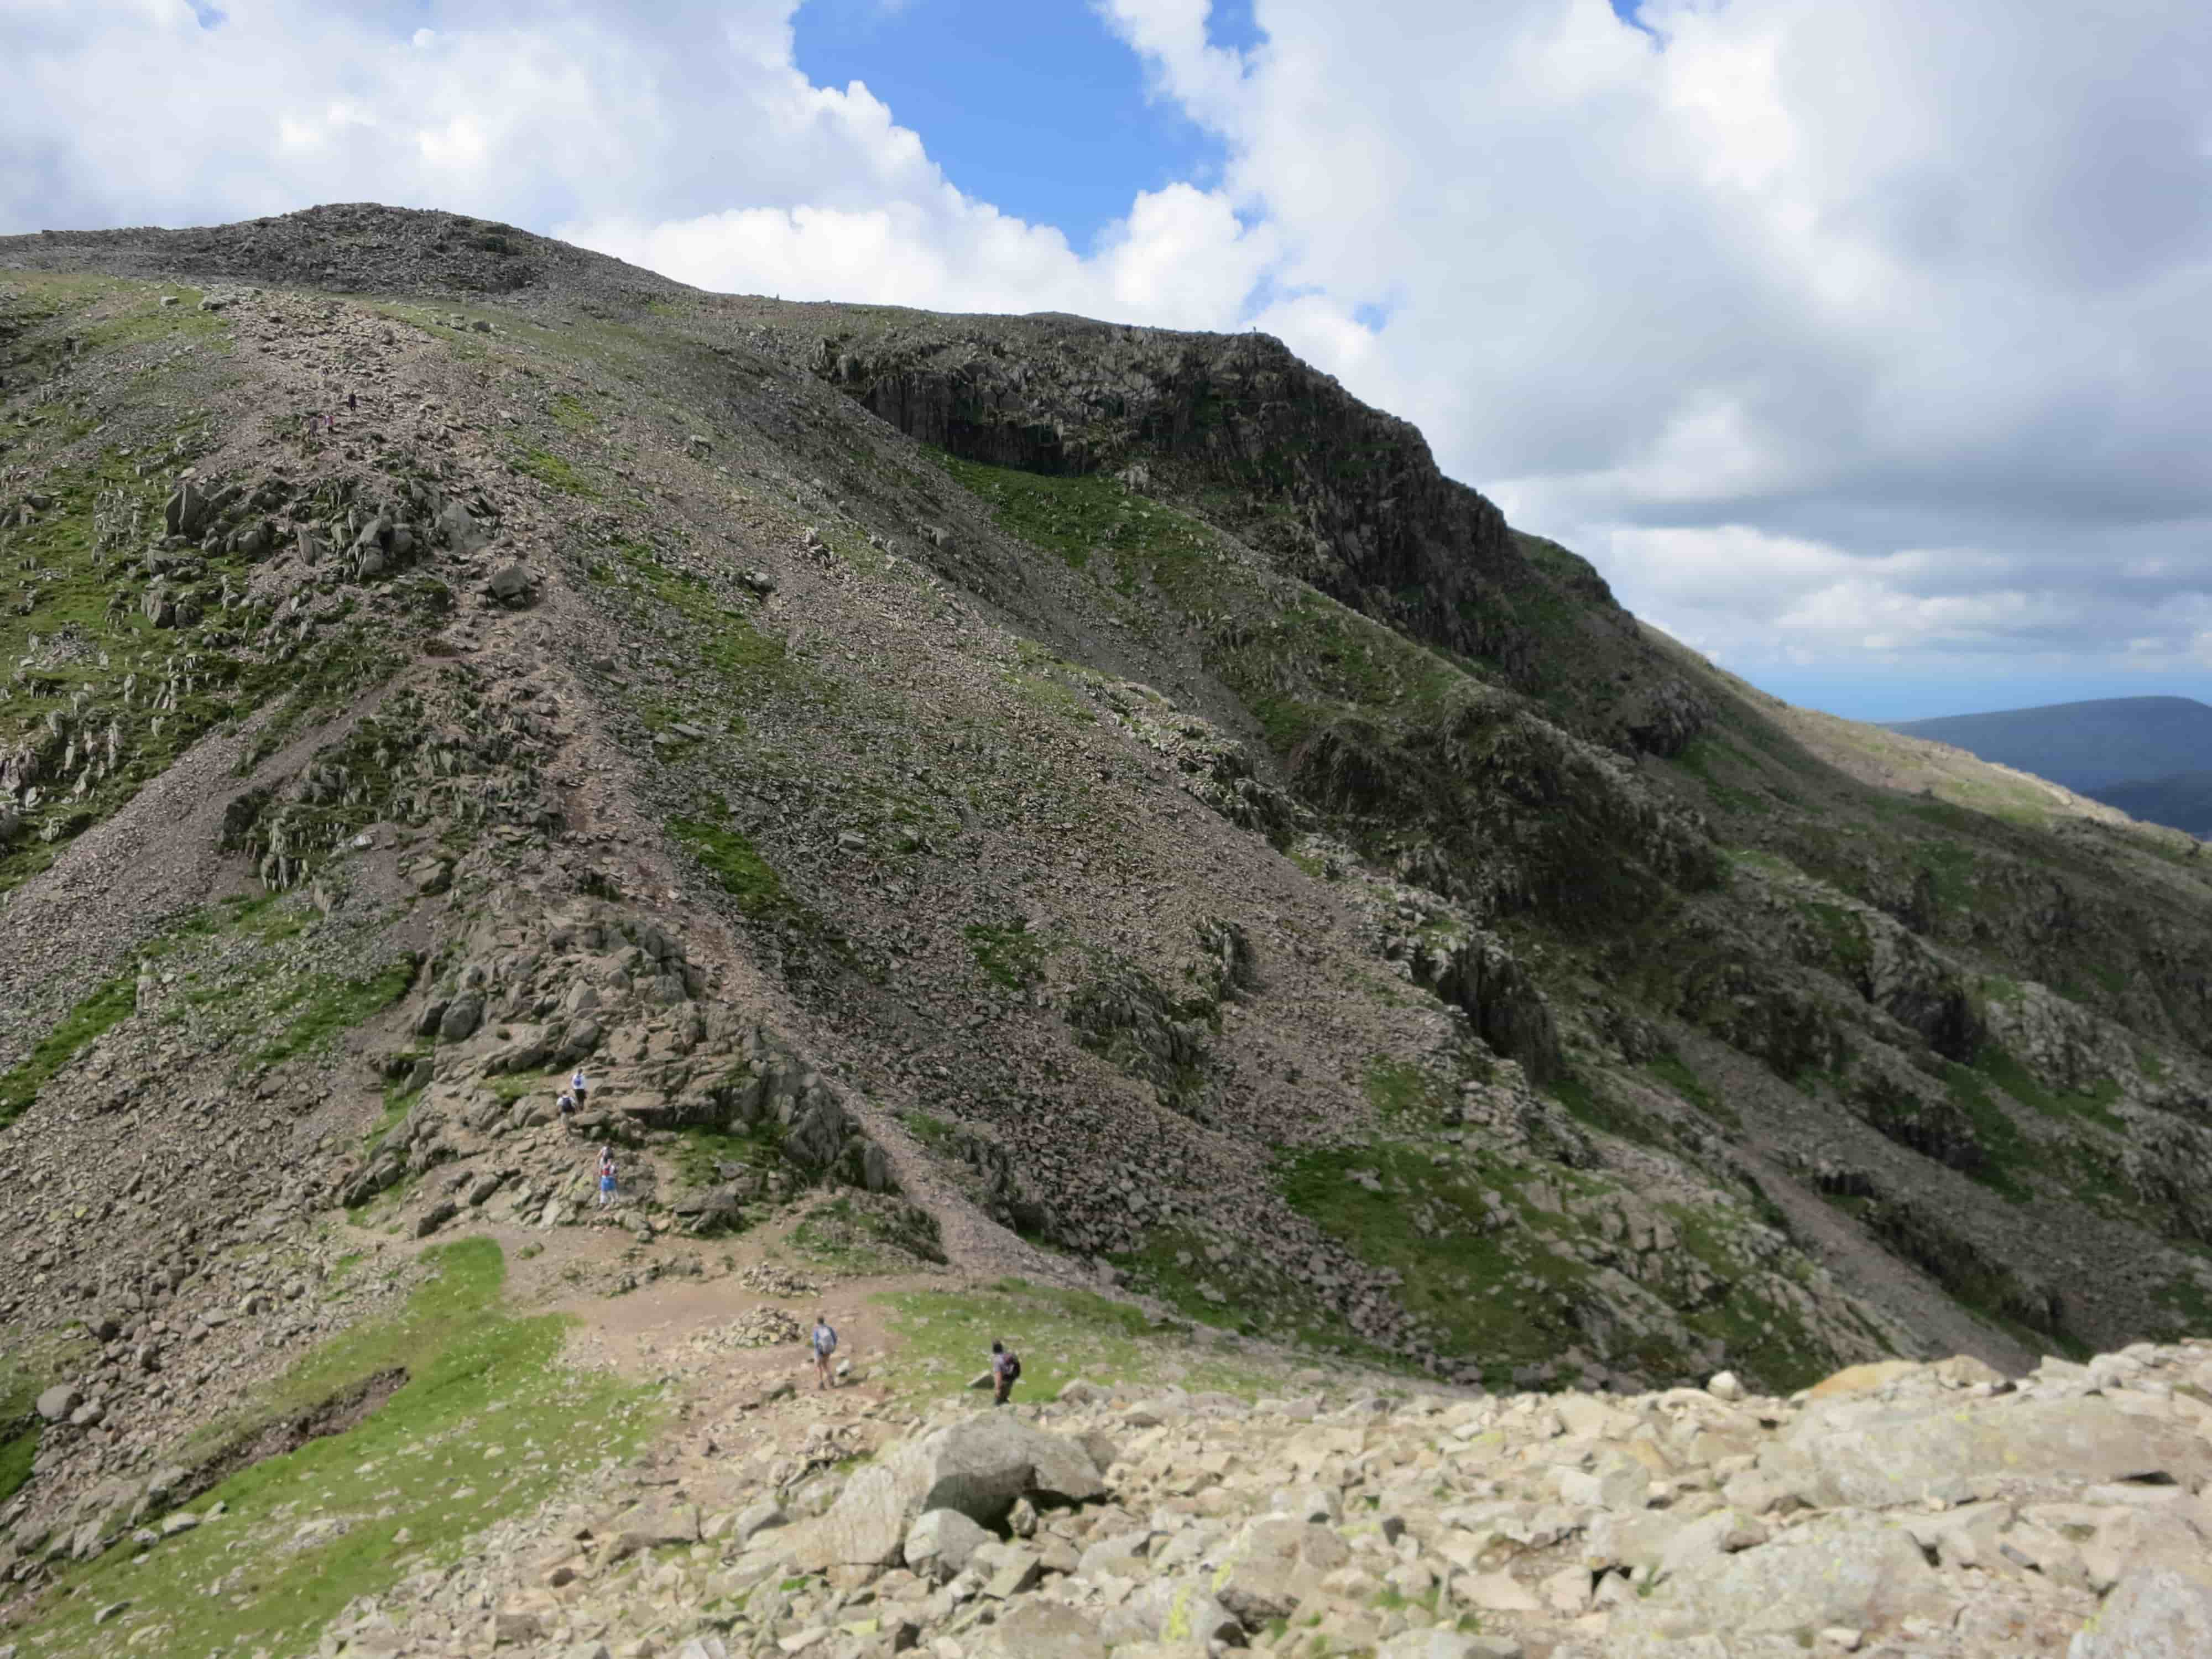 Walking-on-Scafell-Pike-min.jpg